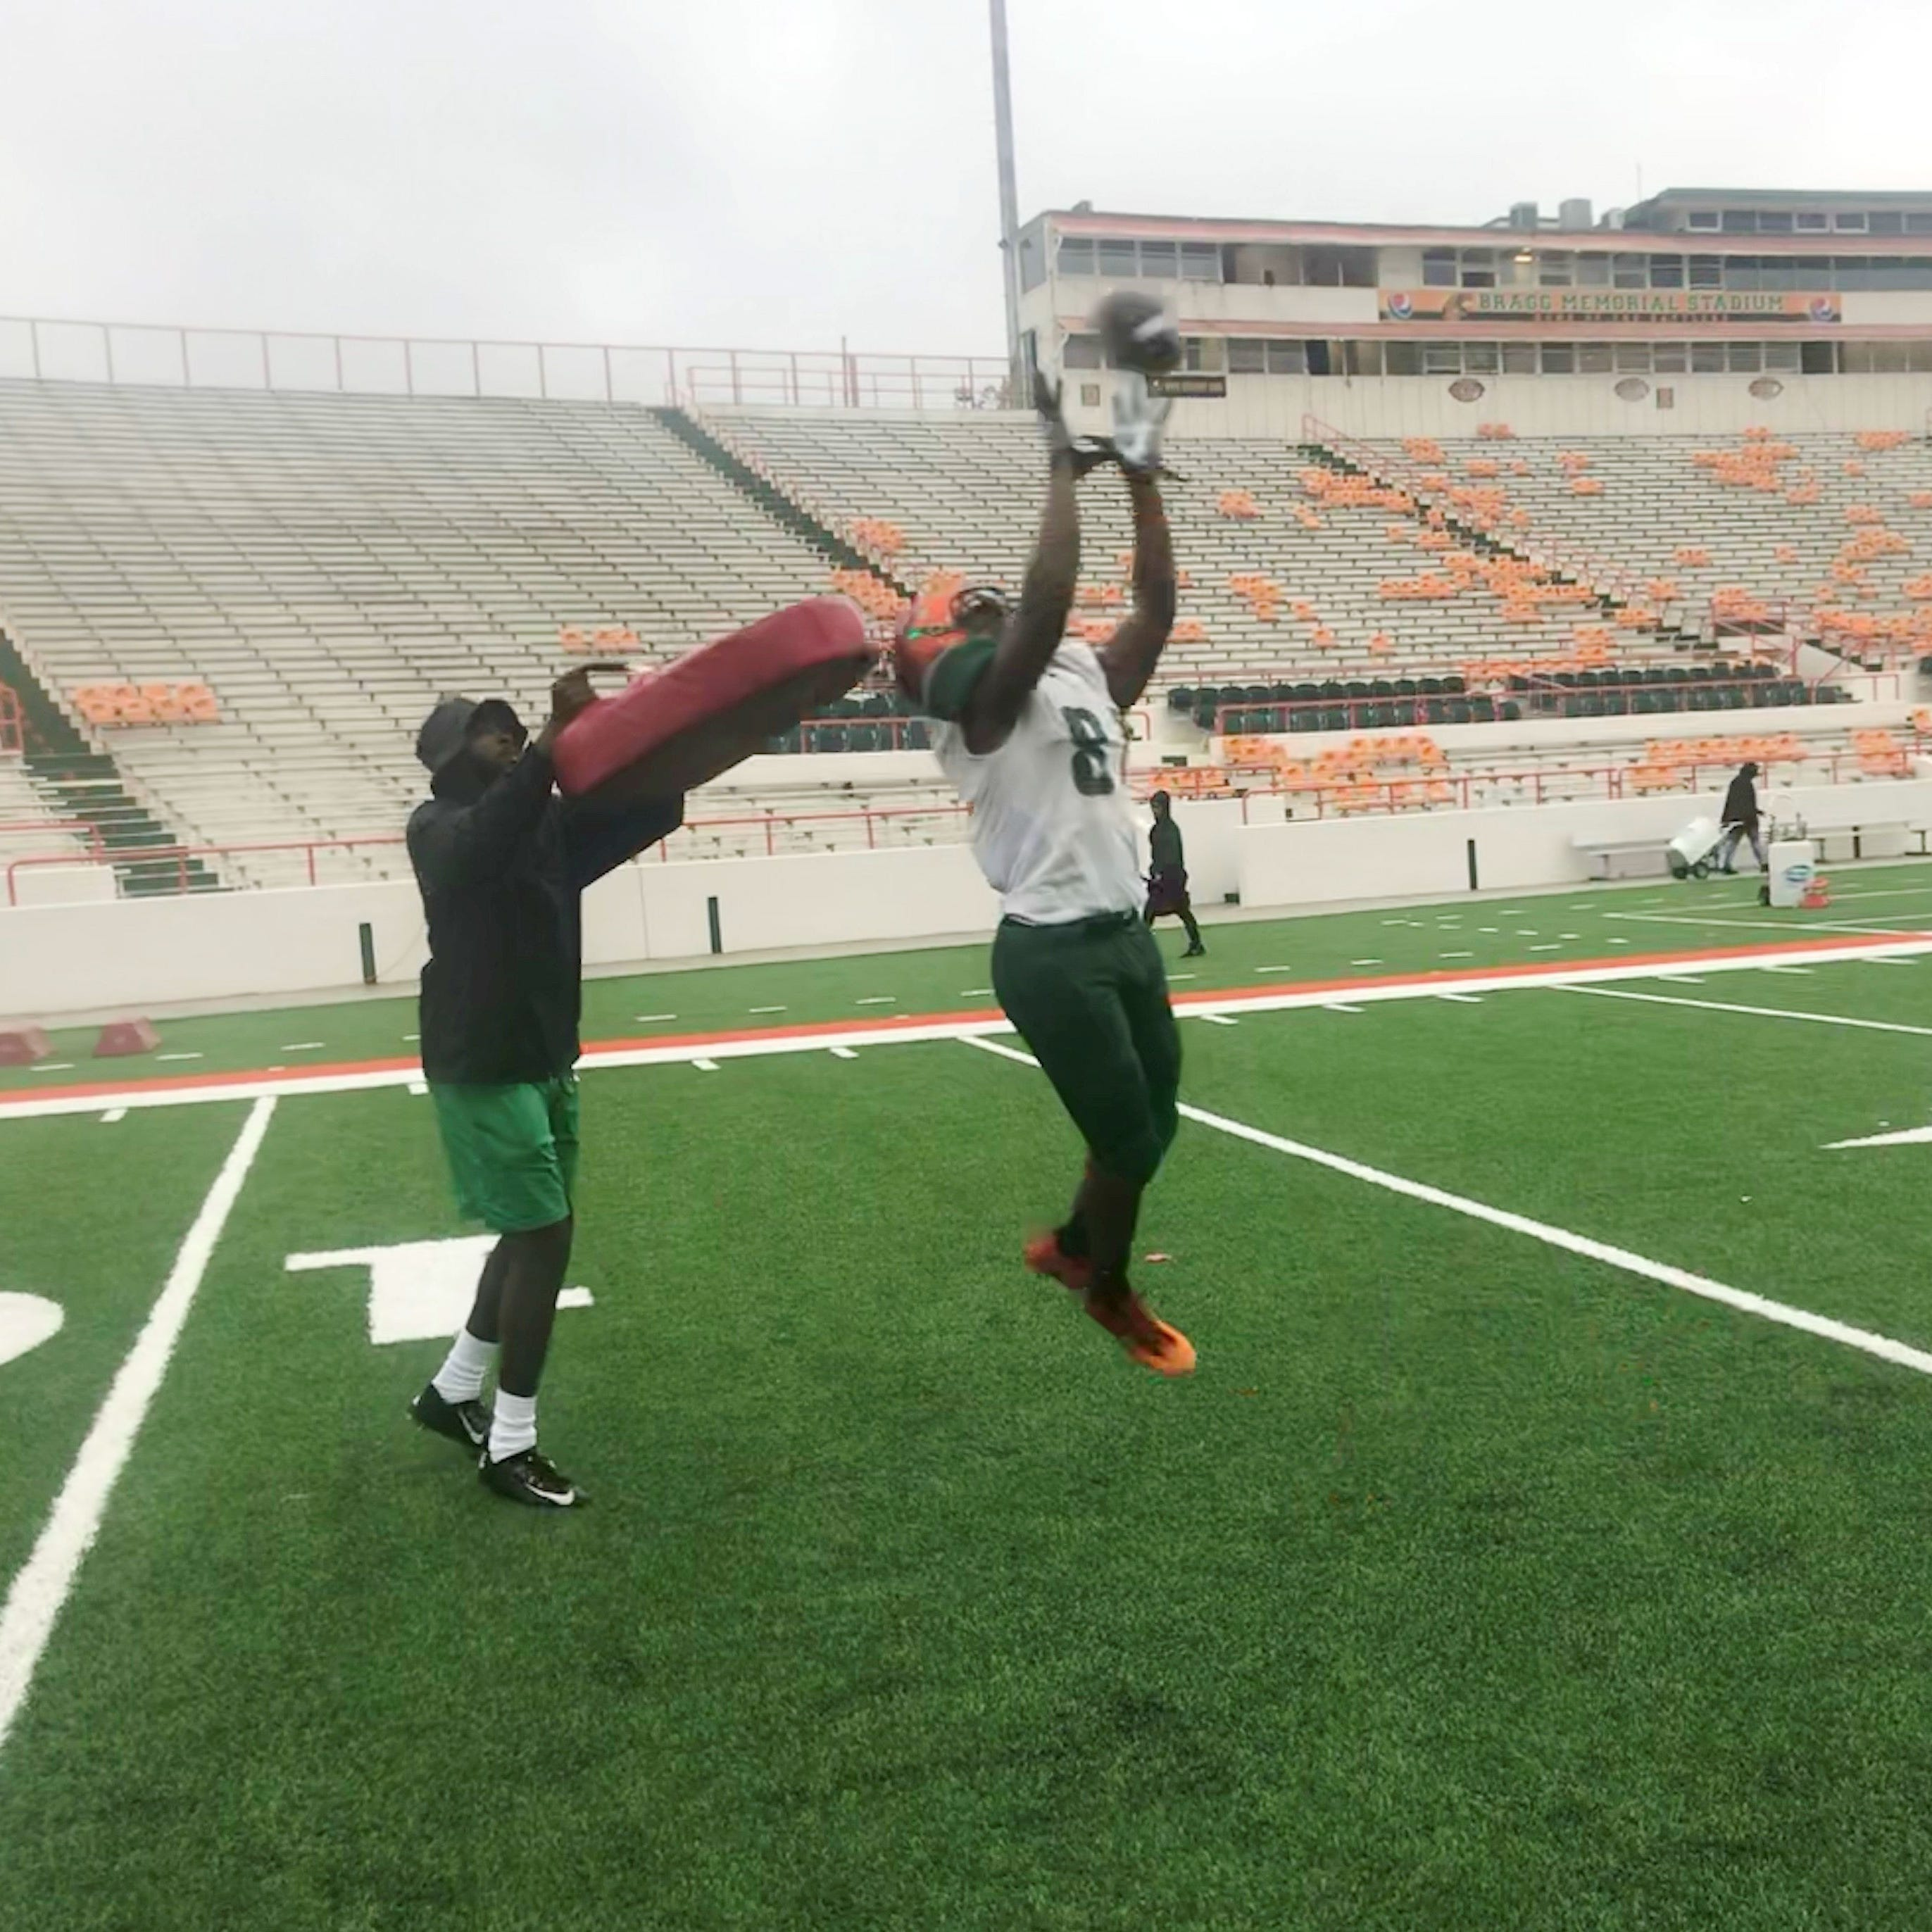 FAMU's MEAC title hopes on the line in Florida Classic